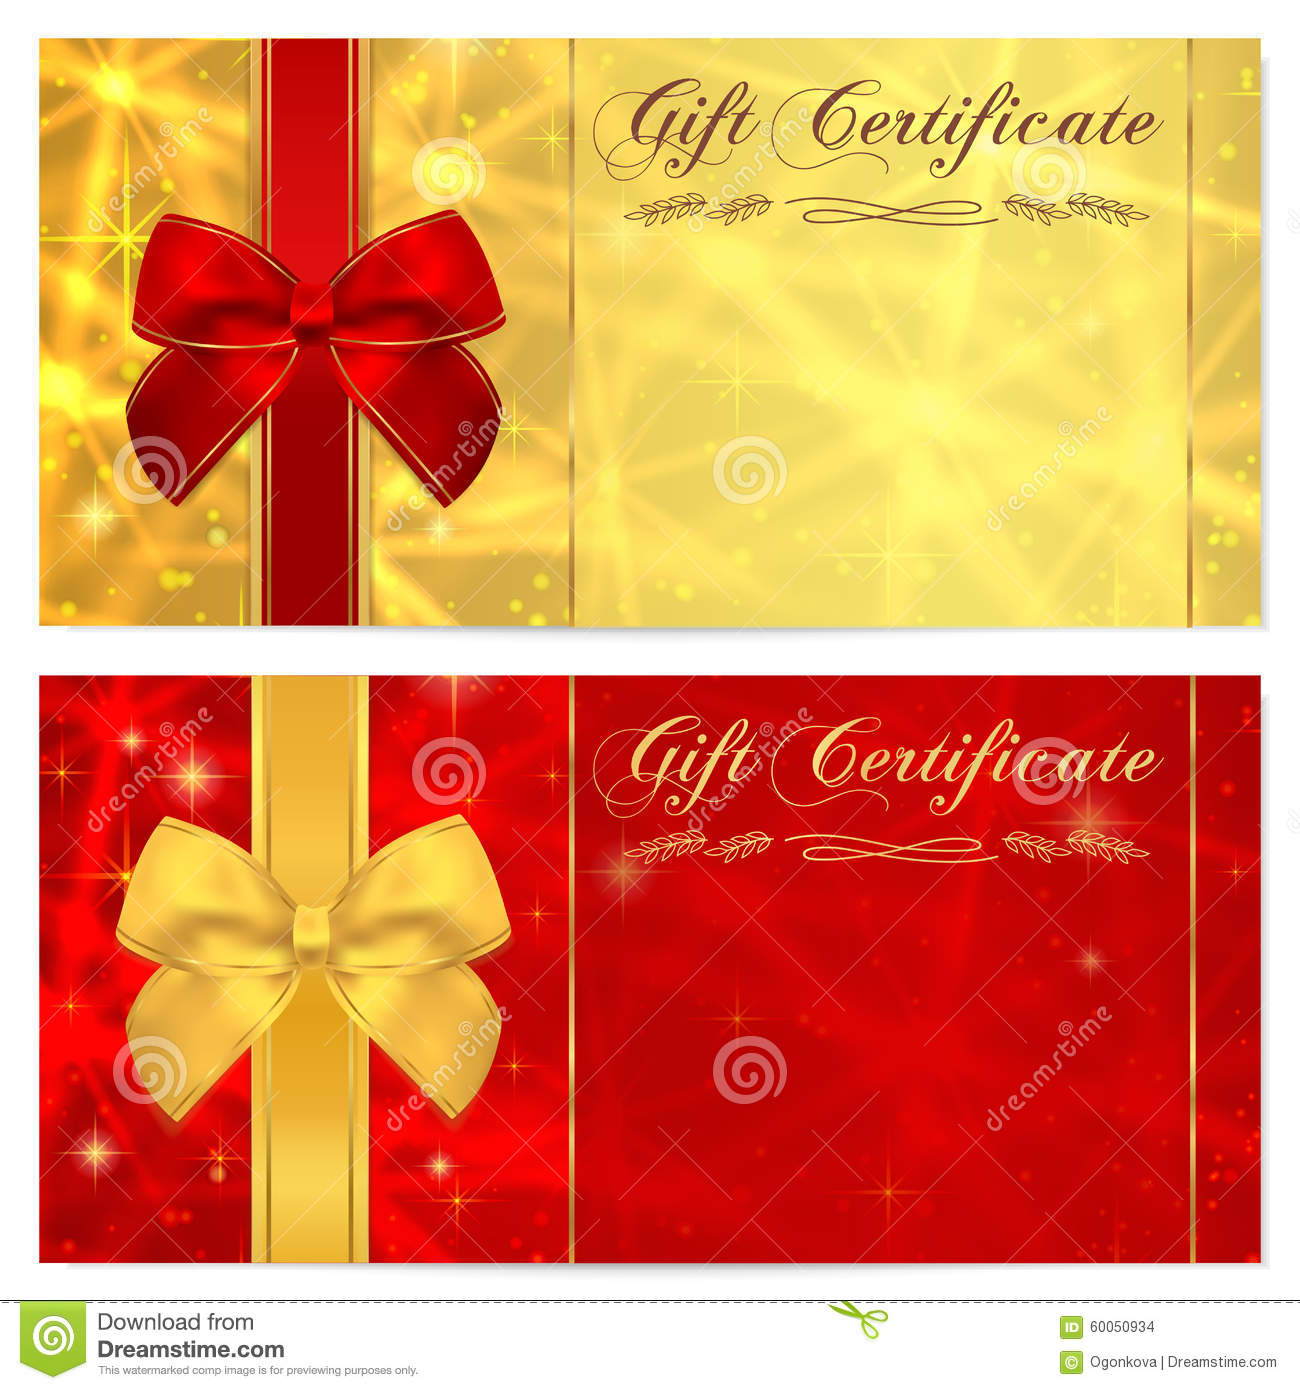 holiday card christmas card birthday card gift card greeting gift certificate voucher coupon invitation or gift card template sparkling twinkling